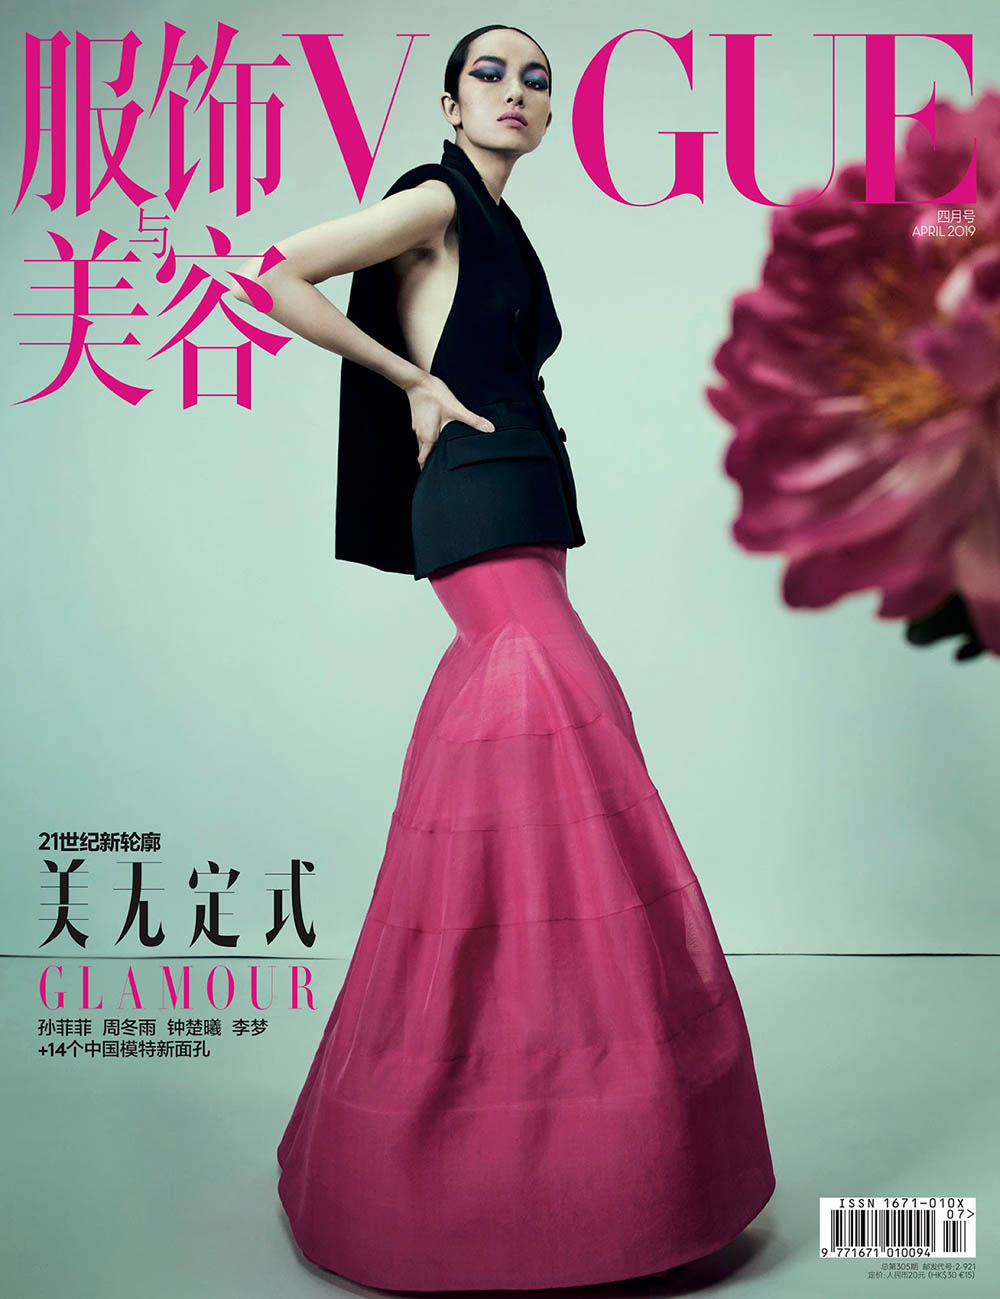 Fei Fei Sun covers Vogue China April 2019 by Emma Summerton